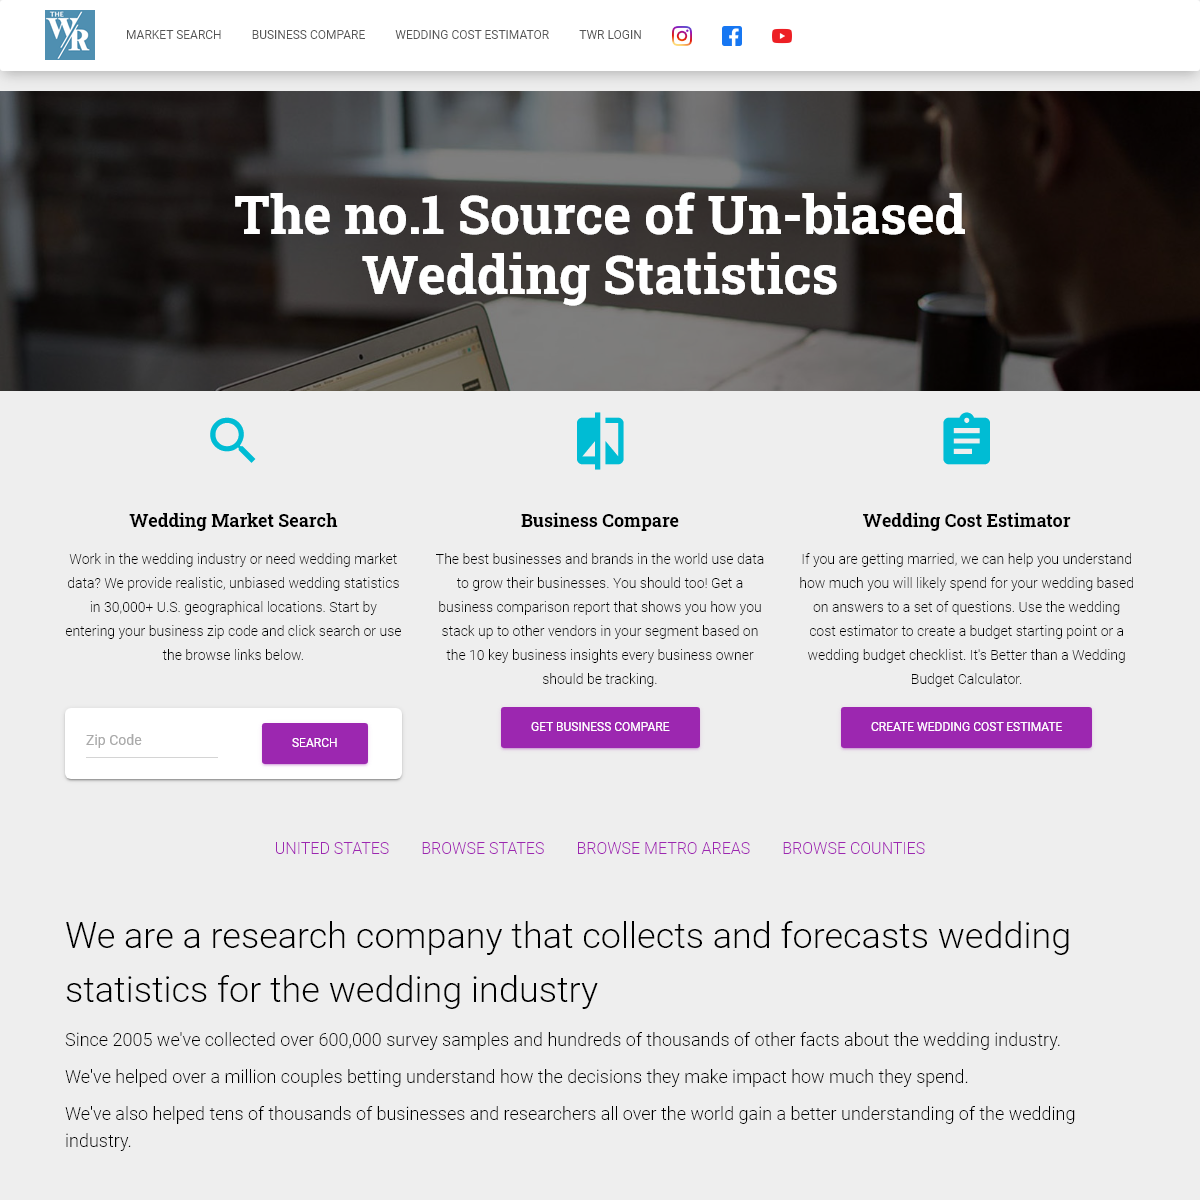 The Wedding Report - Wedding Statistics and Unbiased Market Research for the Wedding Industry